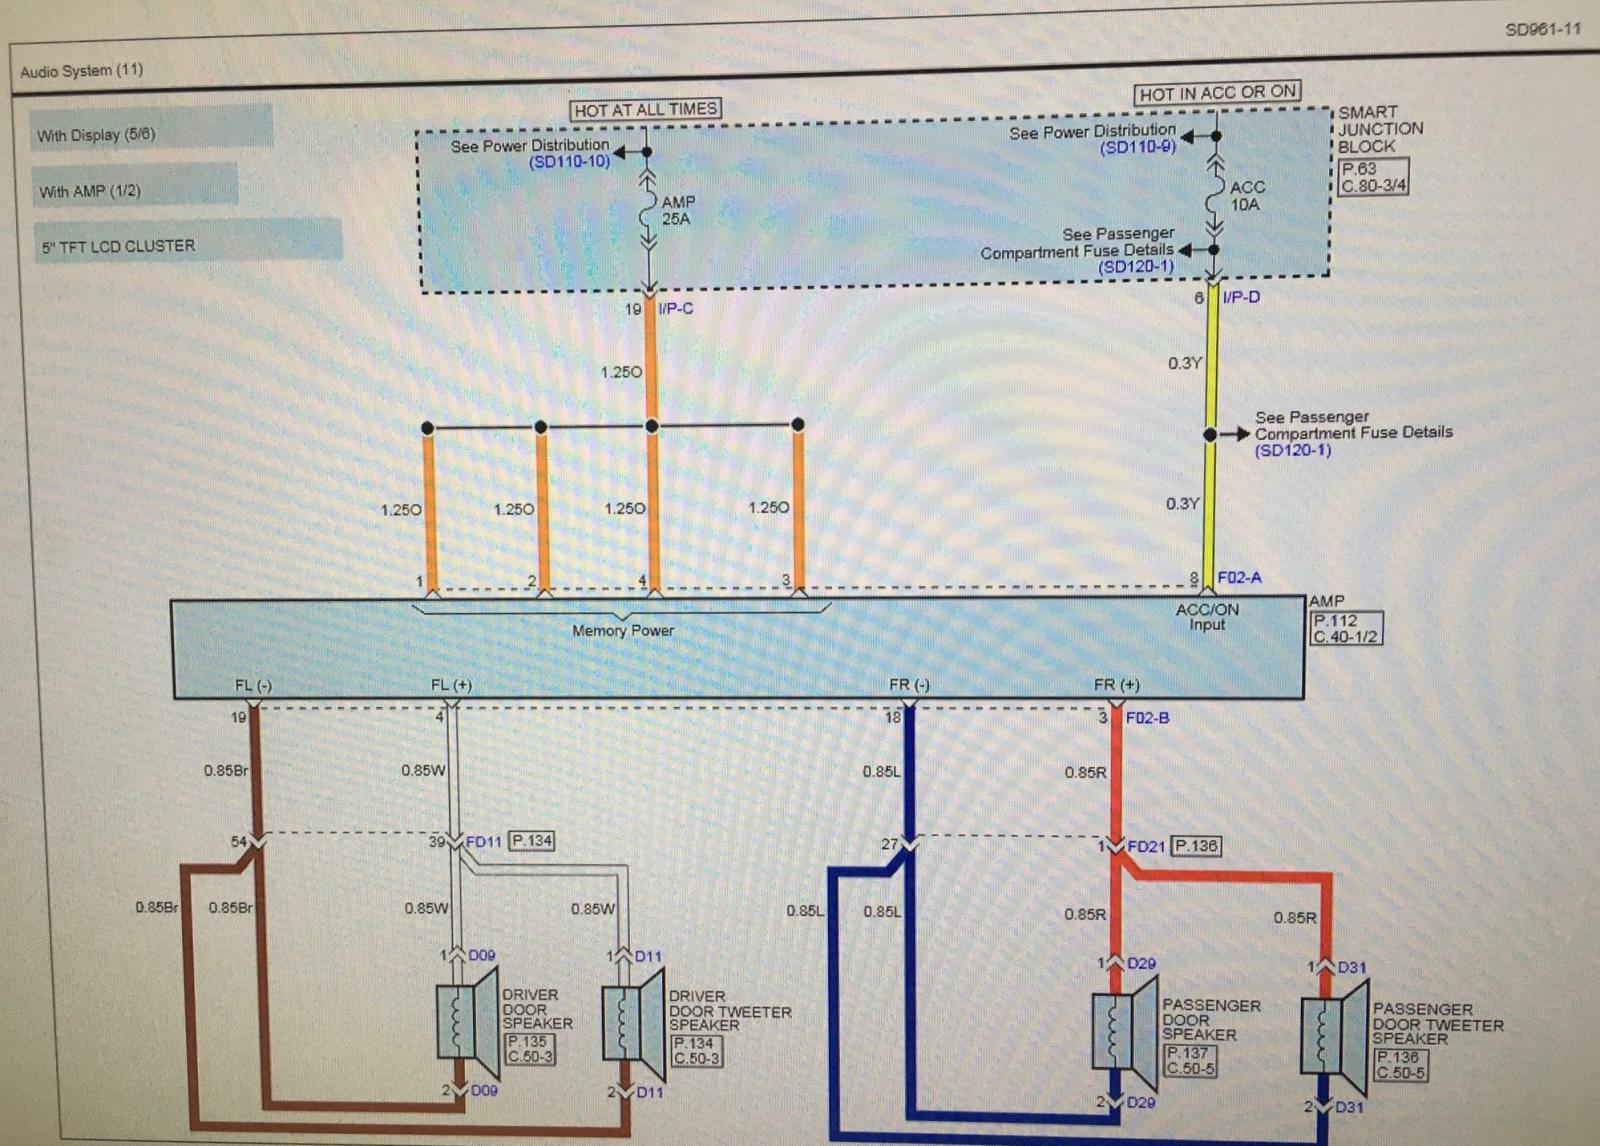 kia rio 2009 radio wiring diagram columbus ship forum